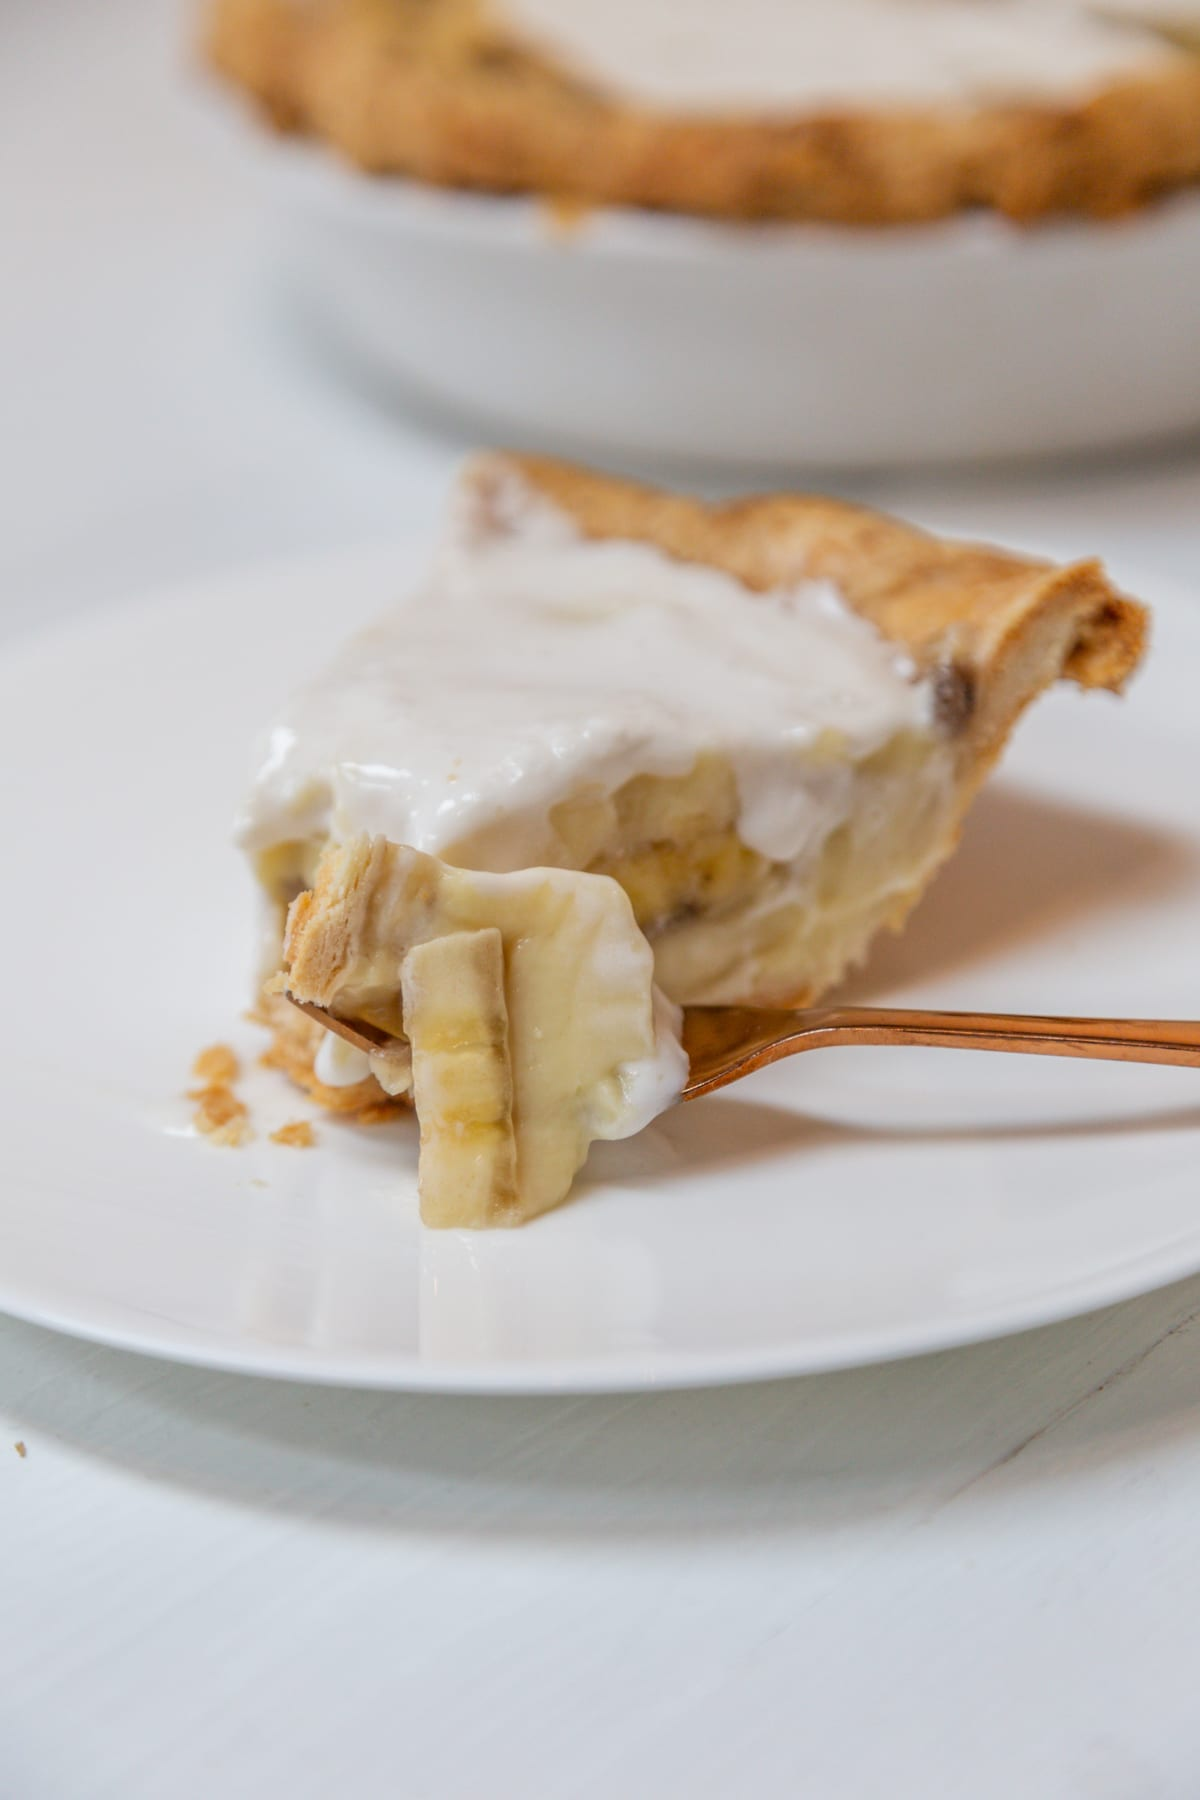 A slice of banana cream pie with a copper fork digging into the pie.